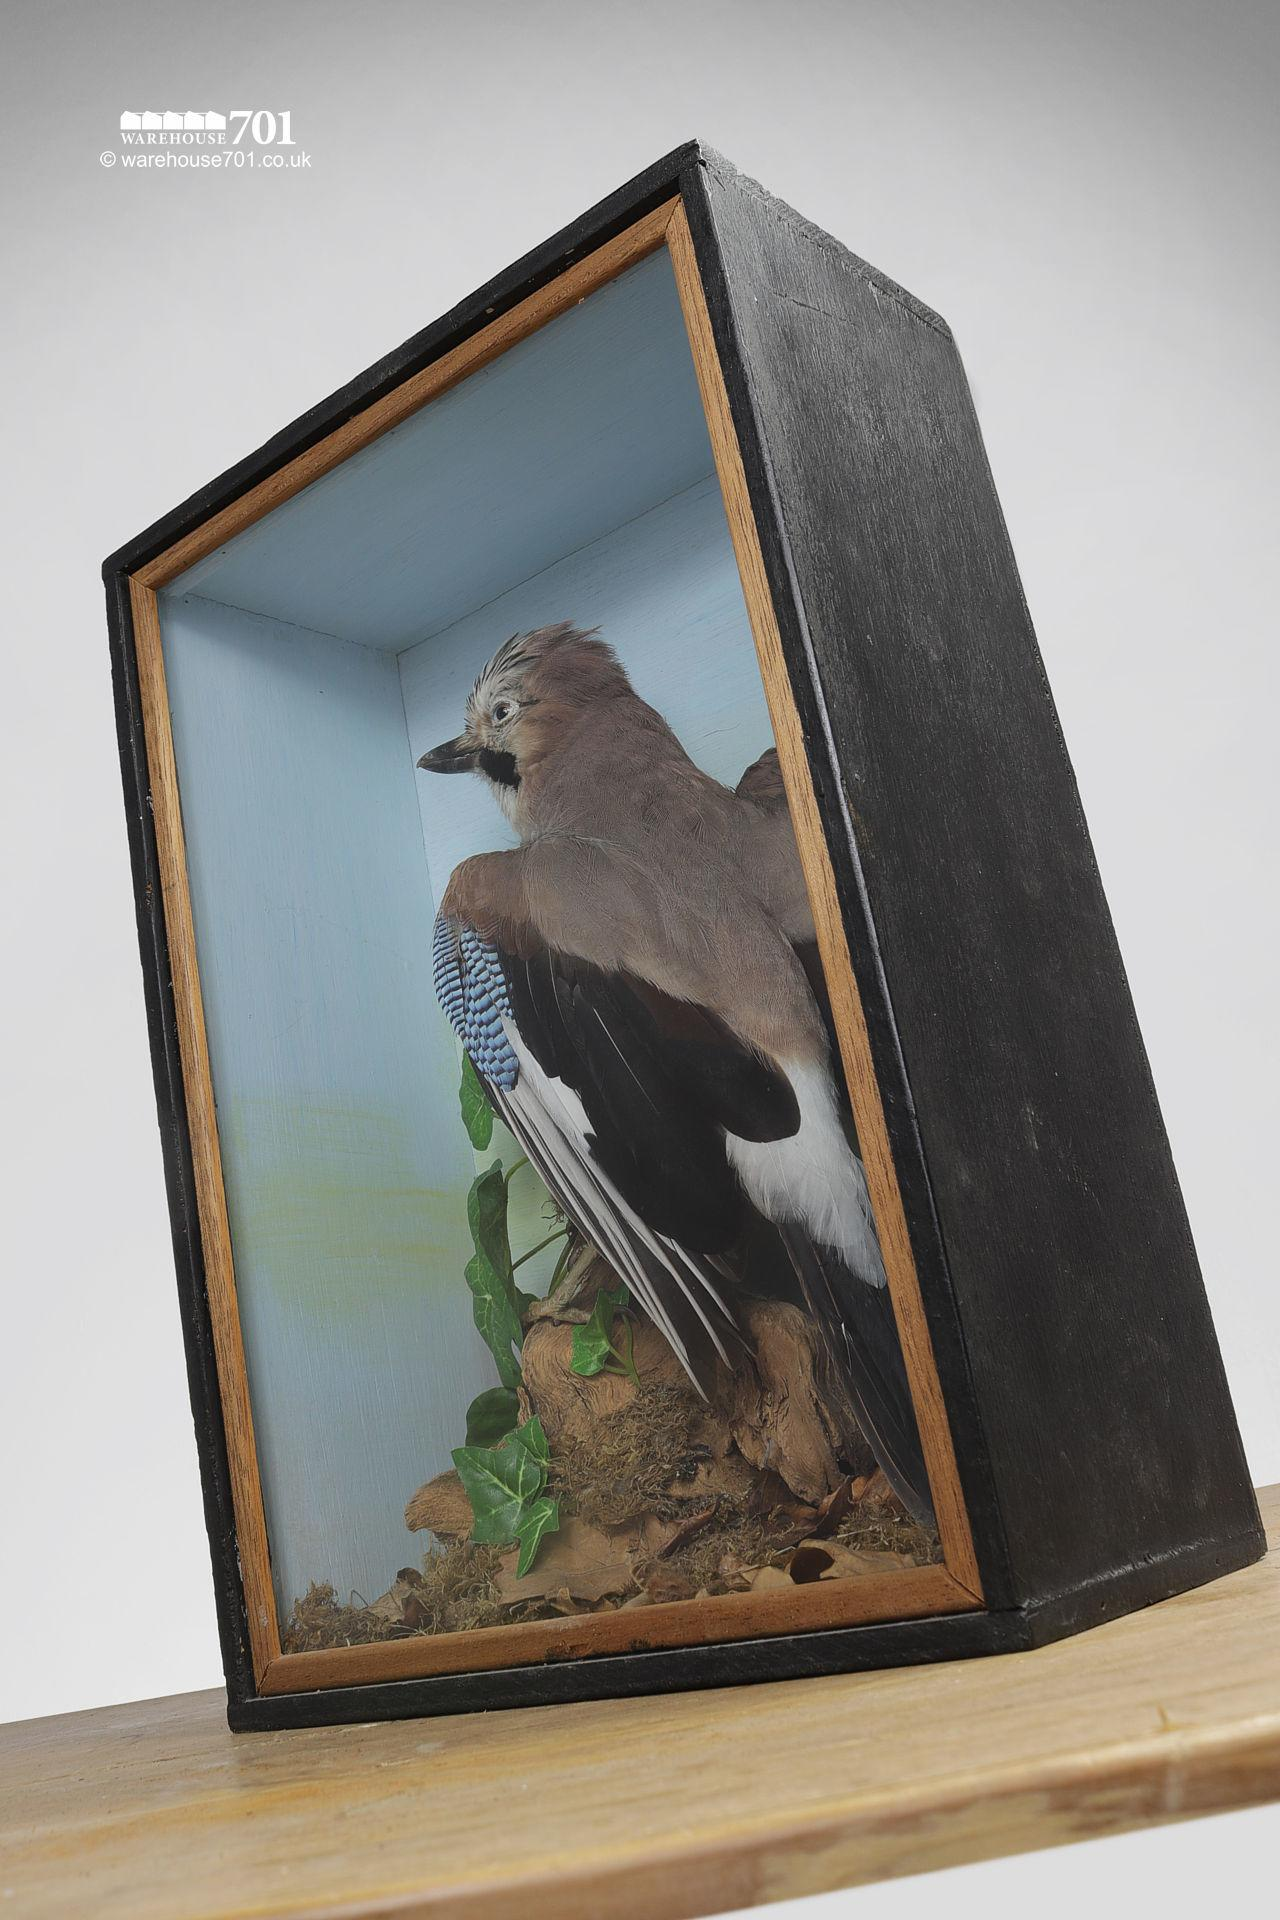 Taxidermy Stuffed Jay Bird in a Glazed Case #4